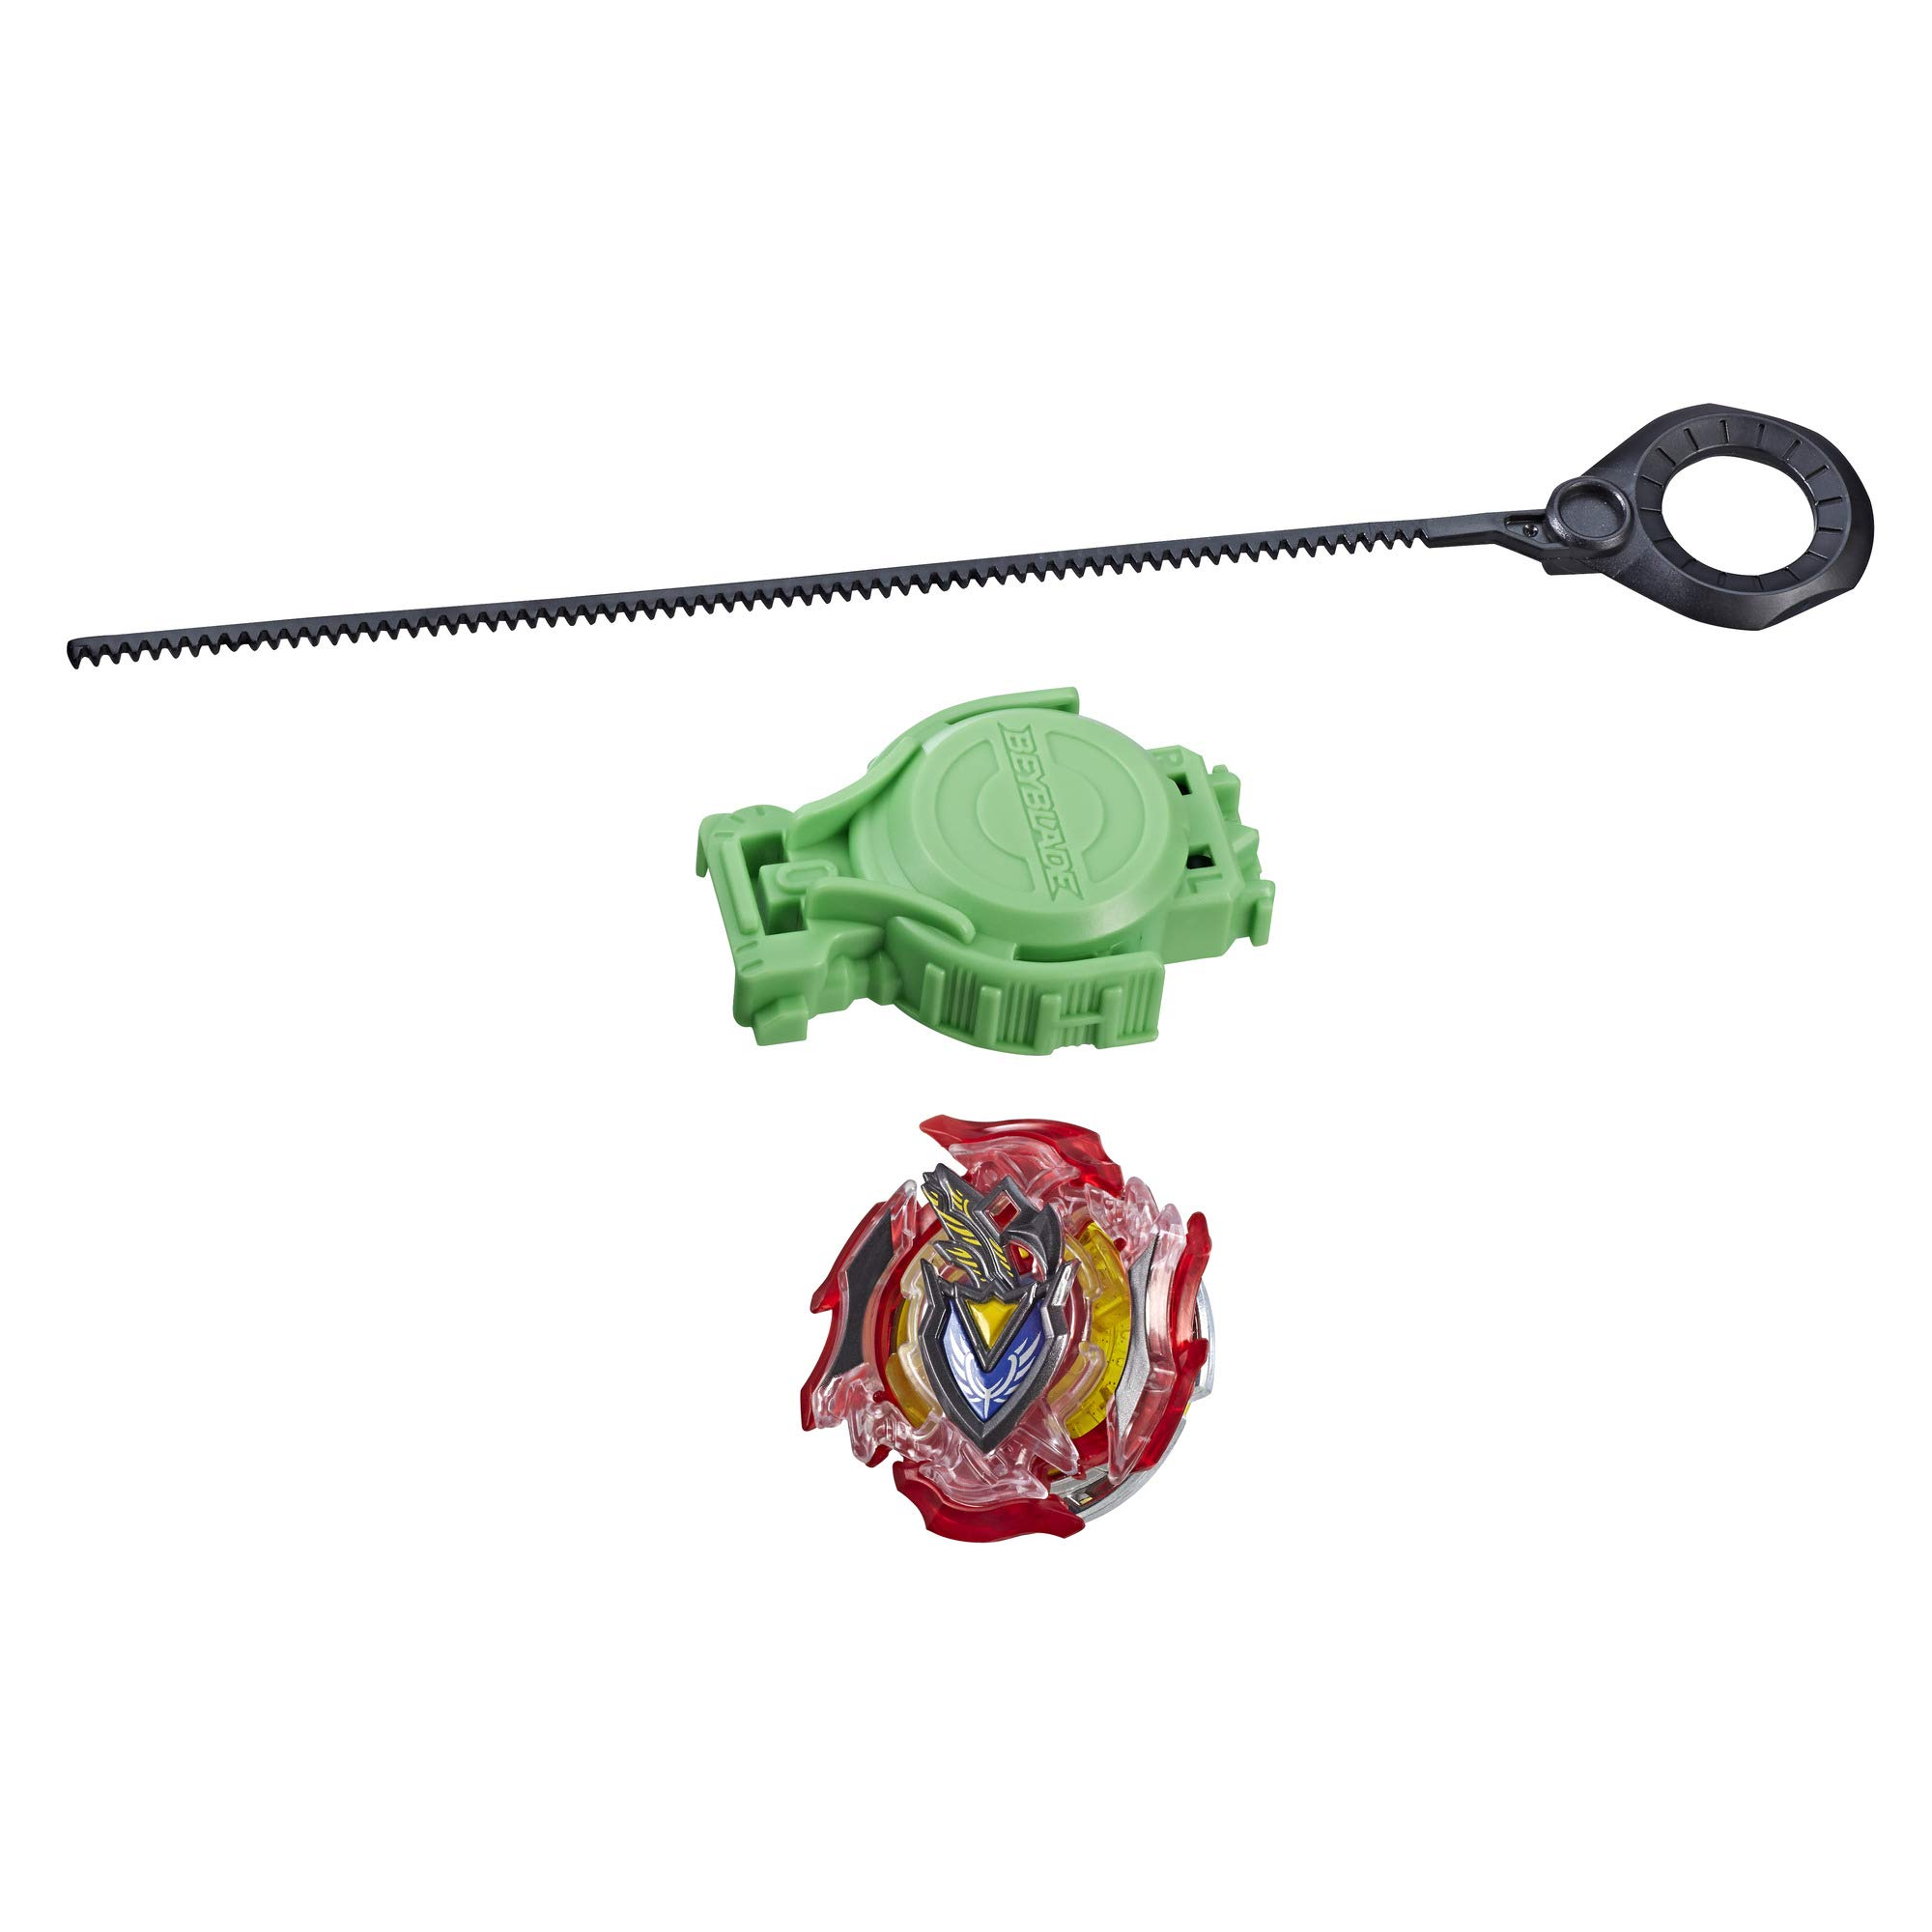 BEYBLADE Burst Slingshock Rip Fire Starter Pack Z Achilles A4: Battling Light-Up Top with Right/Left-Spin Launcher, Age 8+ by BEYBLADE